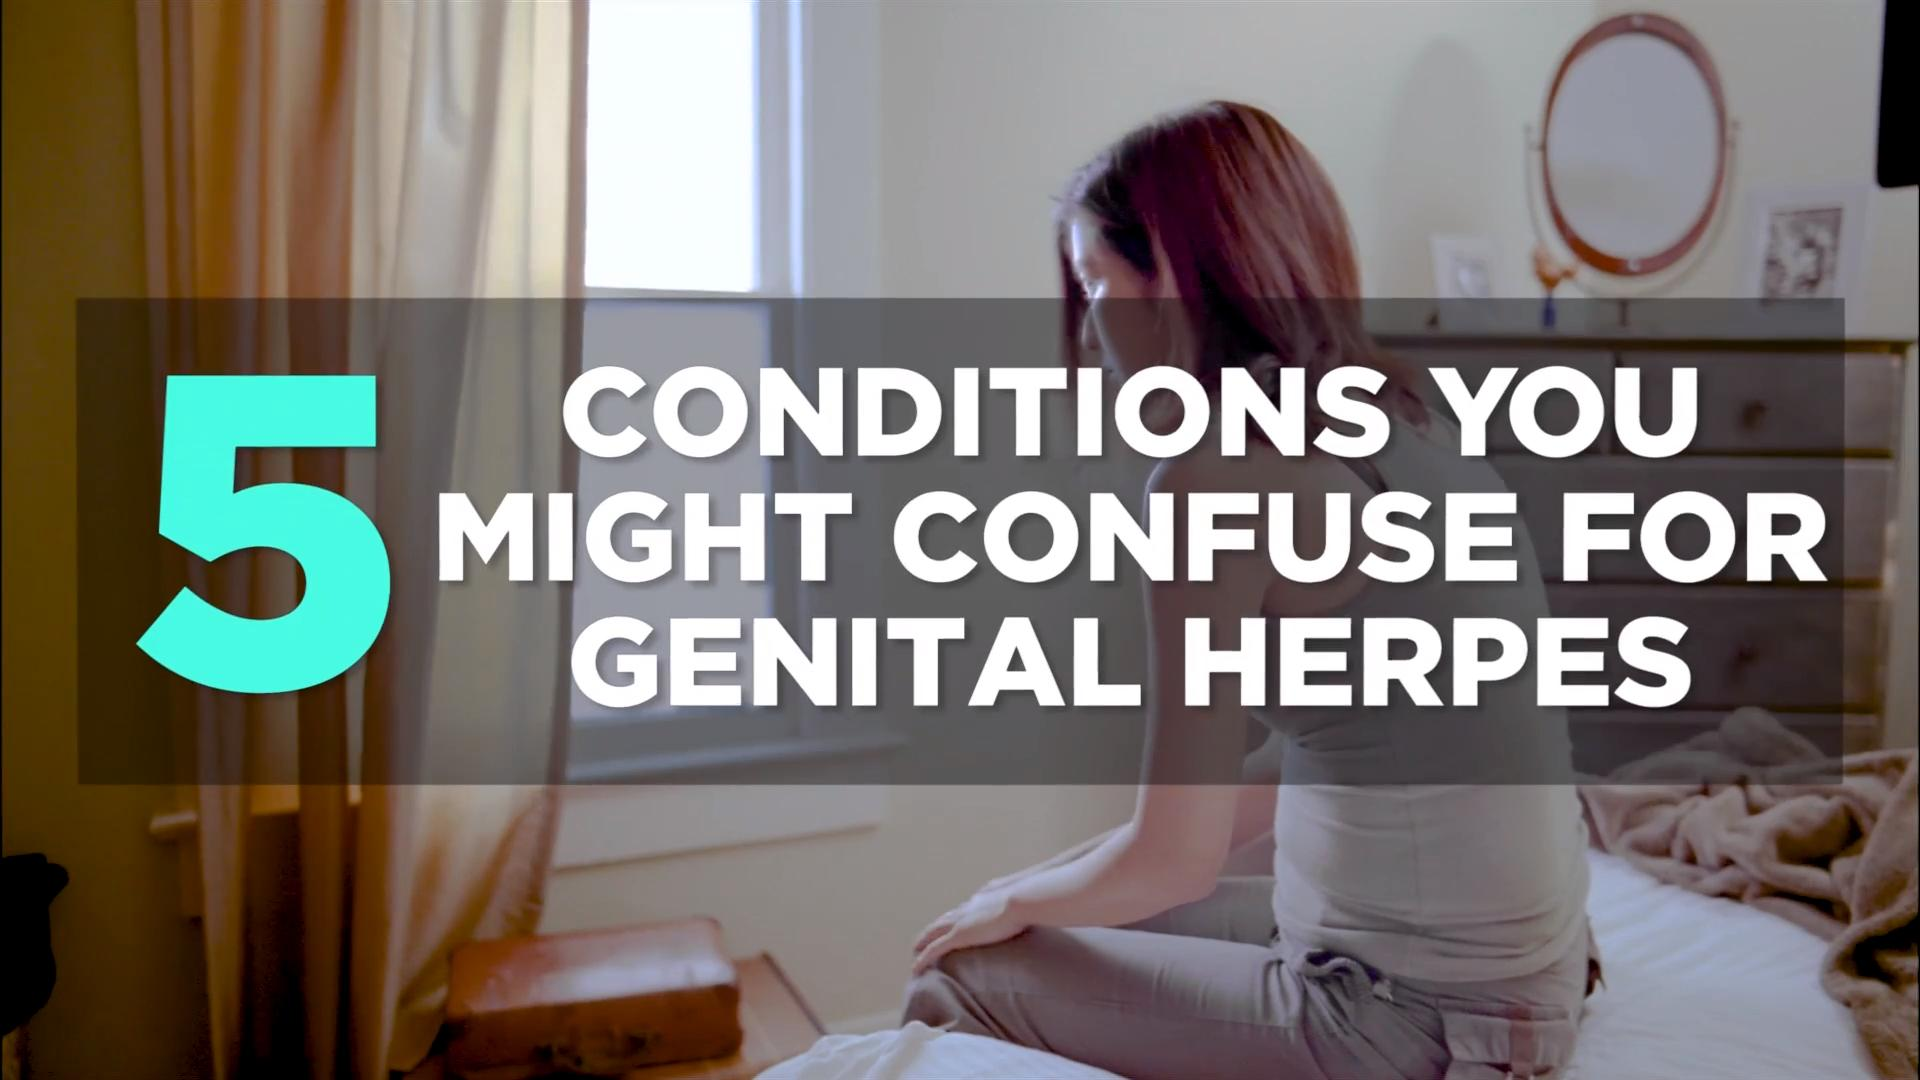 Conditions That Look Like Genital Herpes - Health